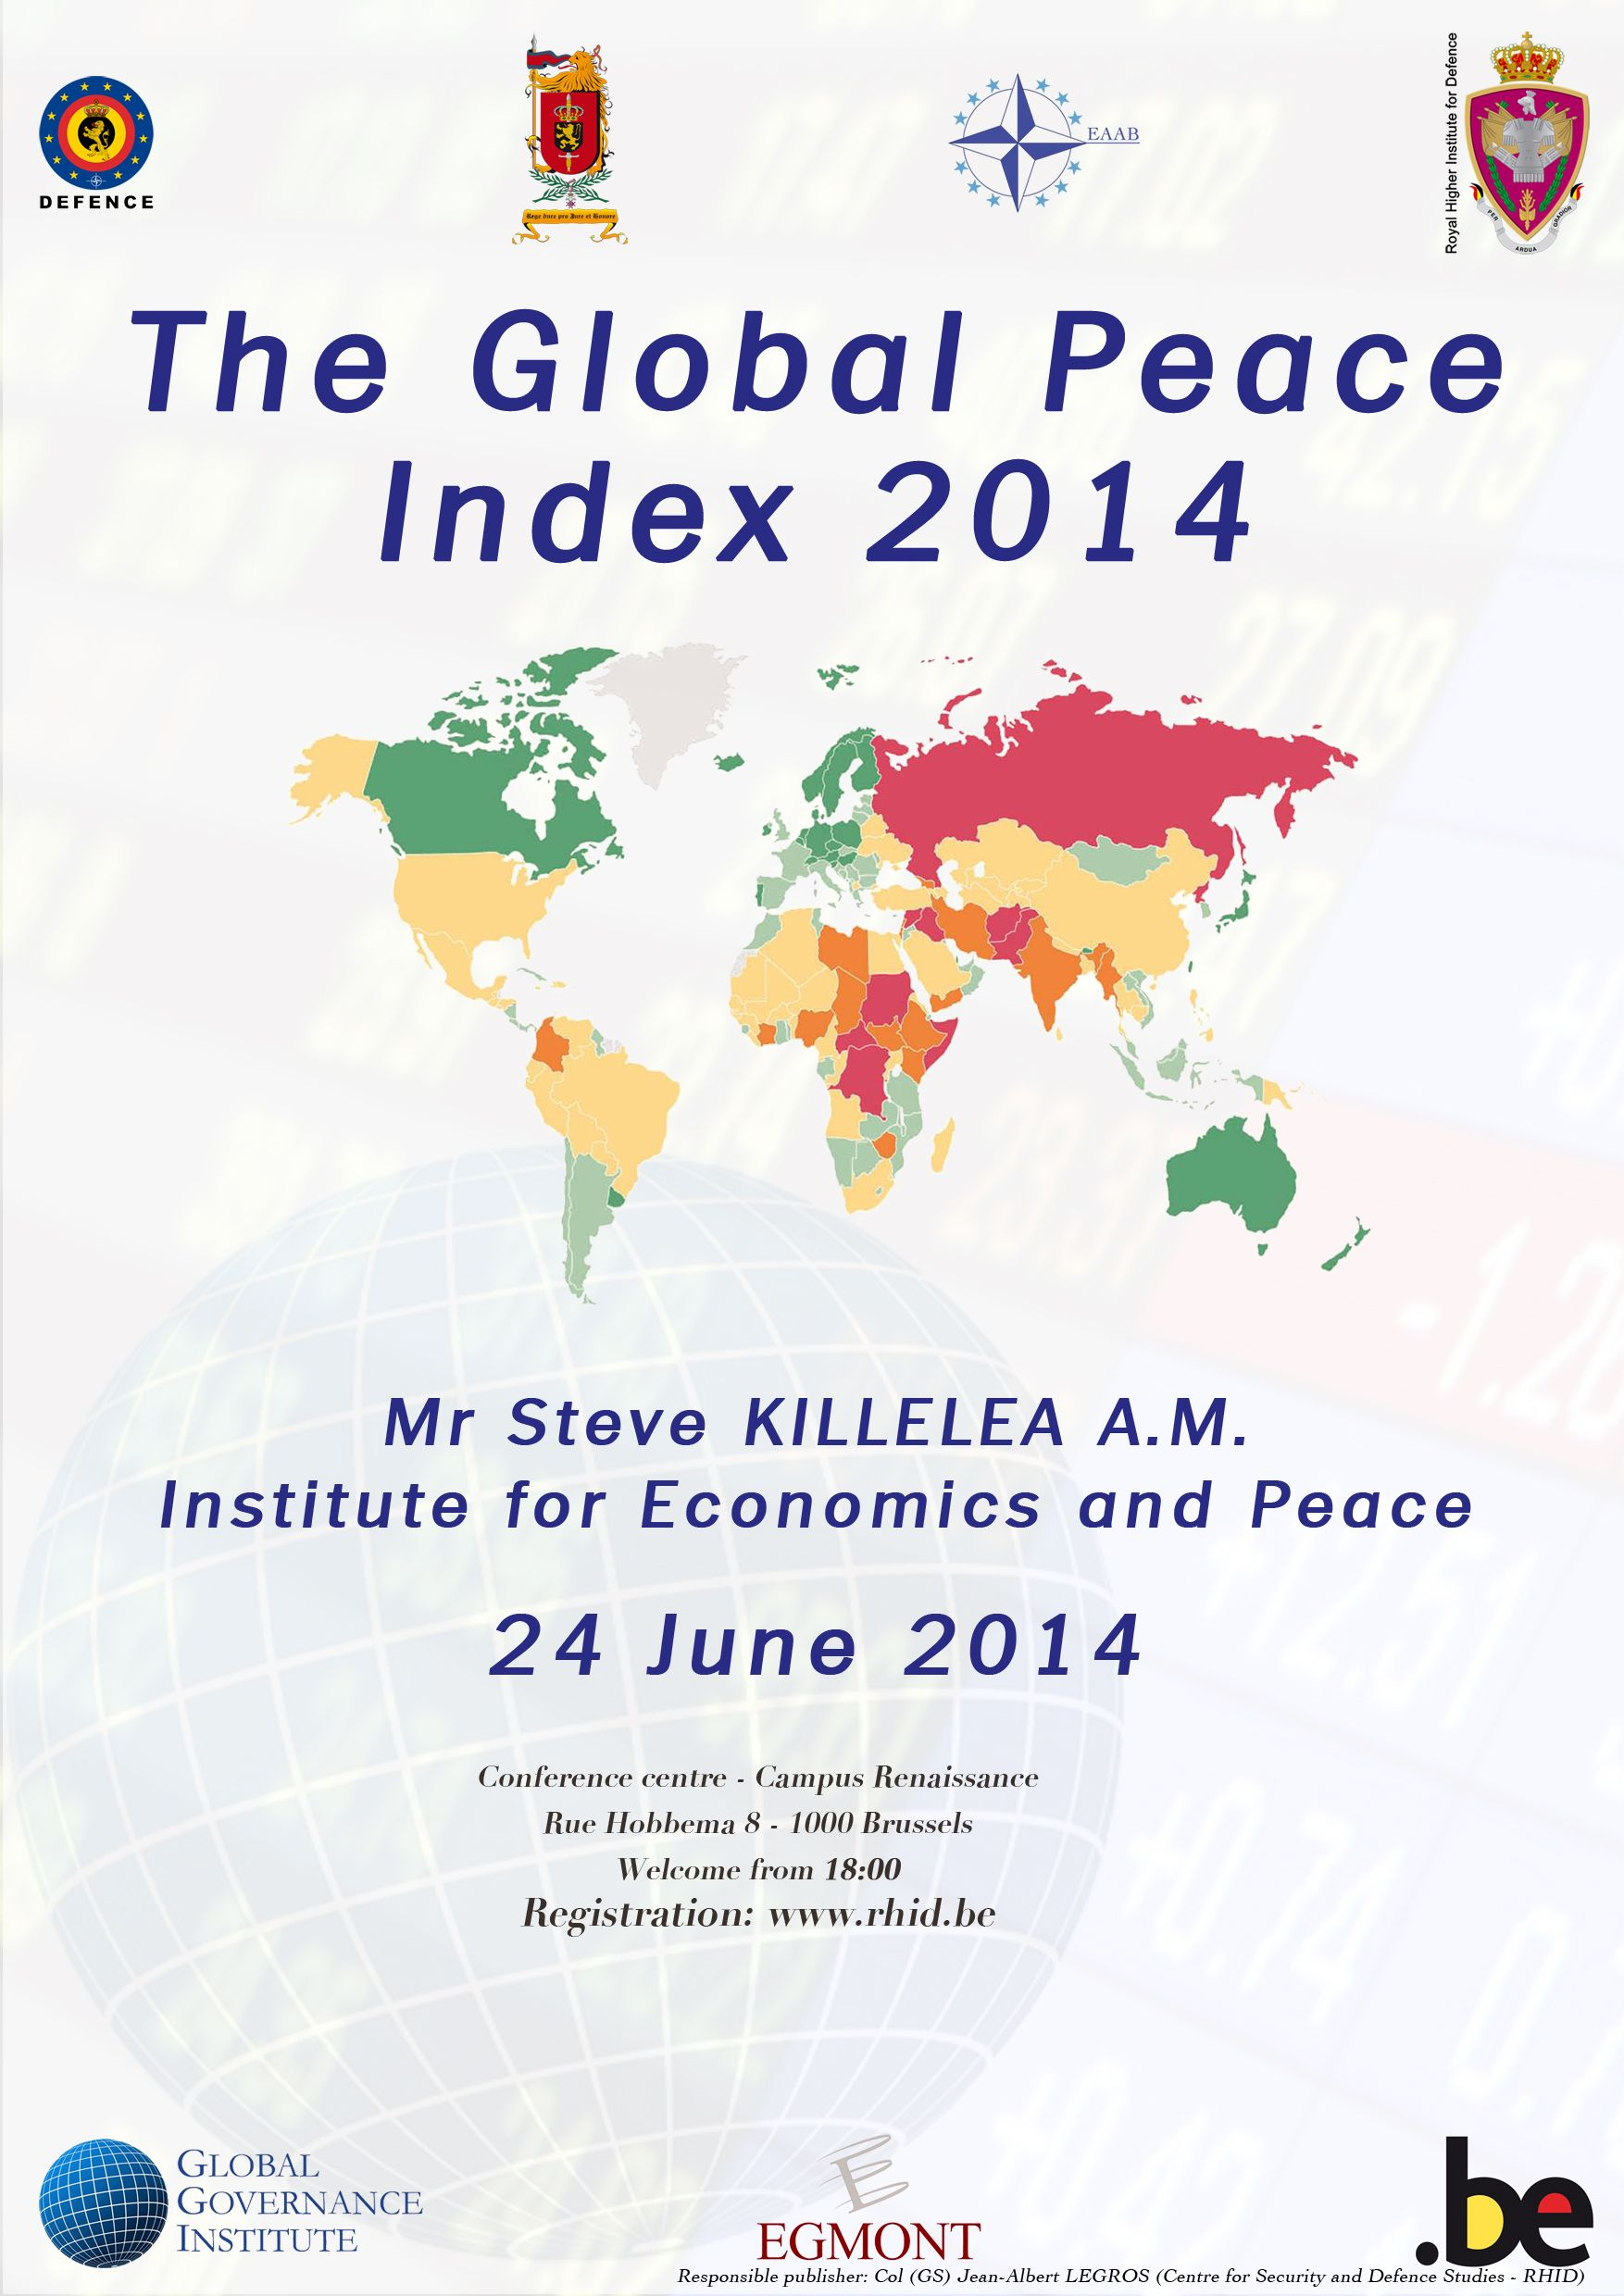 globalization and peace education A formal philosophy of peace and harmony education can assist to undergird individual, institutional, societal, governmental, global organizational commitment to peace and harmony education, in all levels of education.